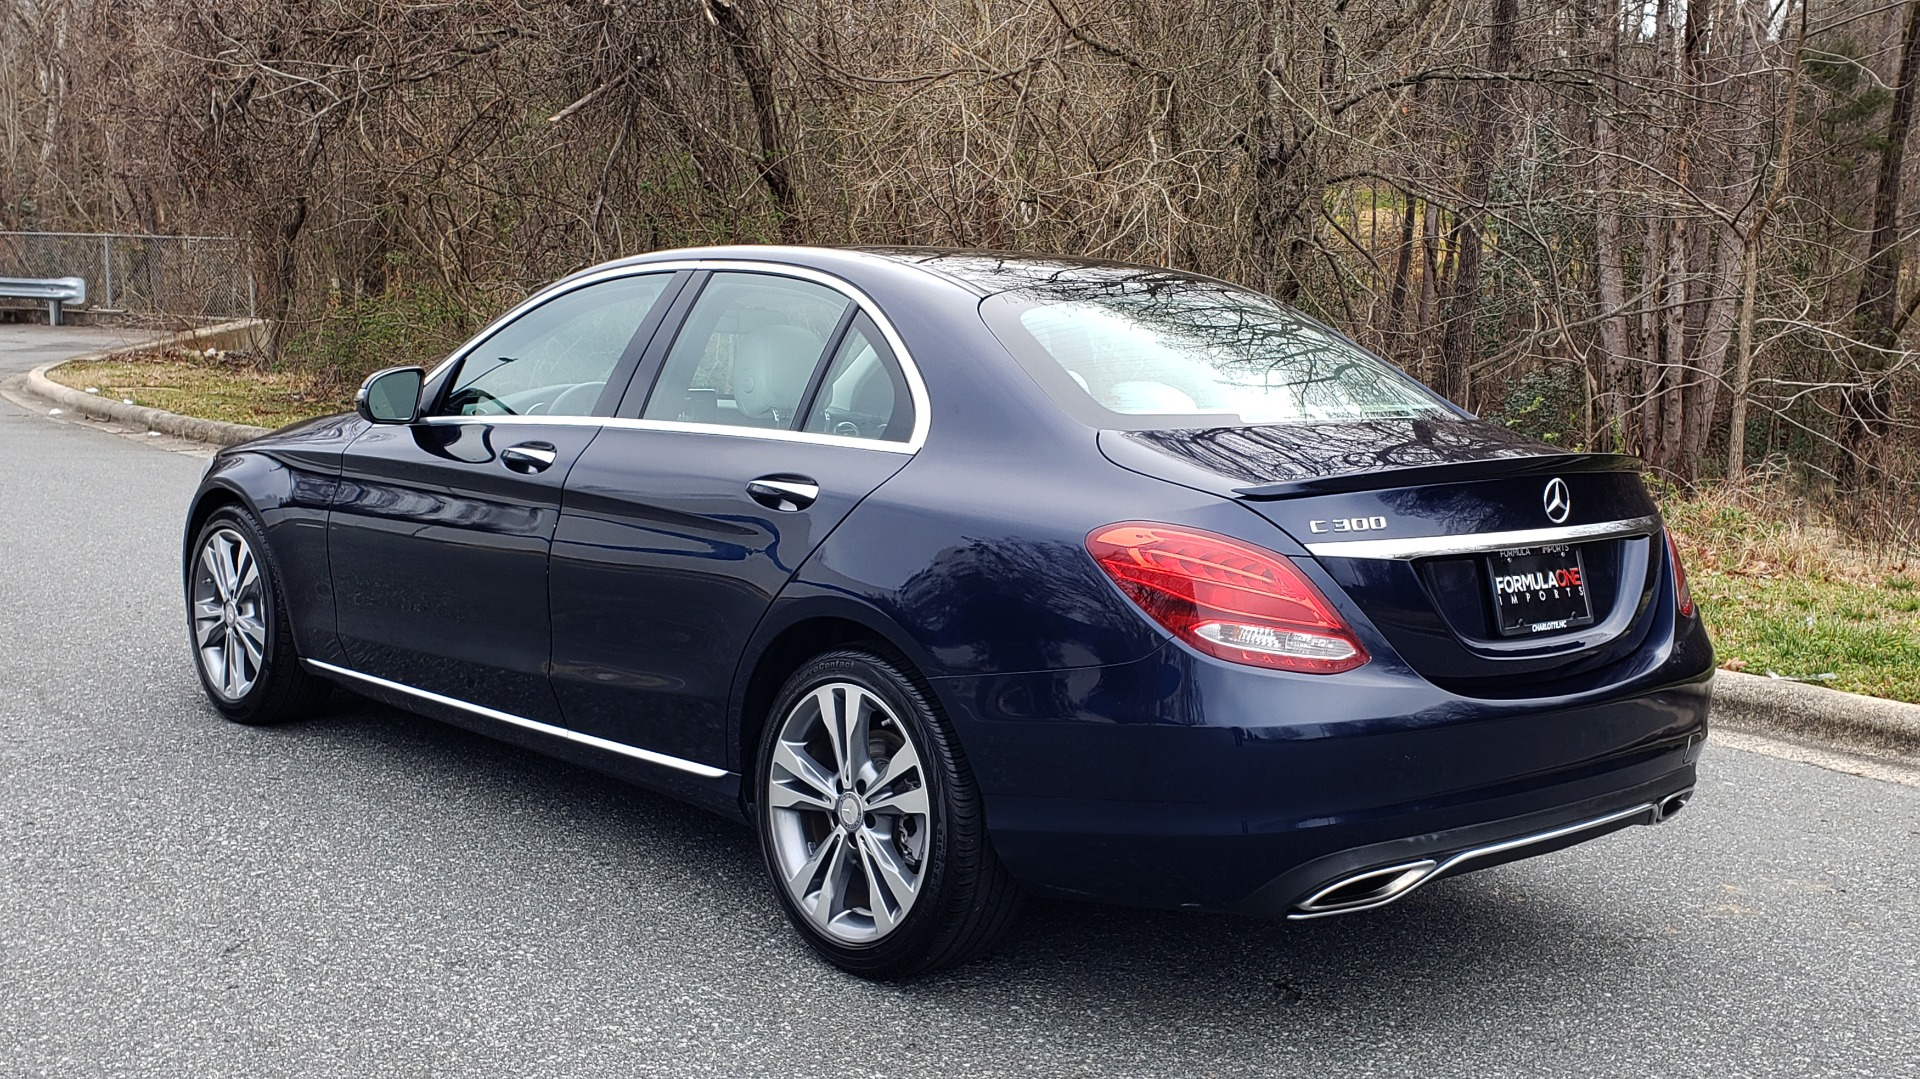 Used 2016 Mercedes-Benz C-CLASS C 300 / PREM PKG / PANO-ROOF / BSA / HTD STS / REARVIEW for sale Sold at Formula Imports in Charlotte NC 28227 3